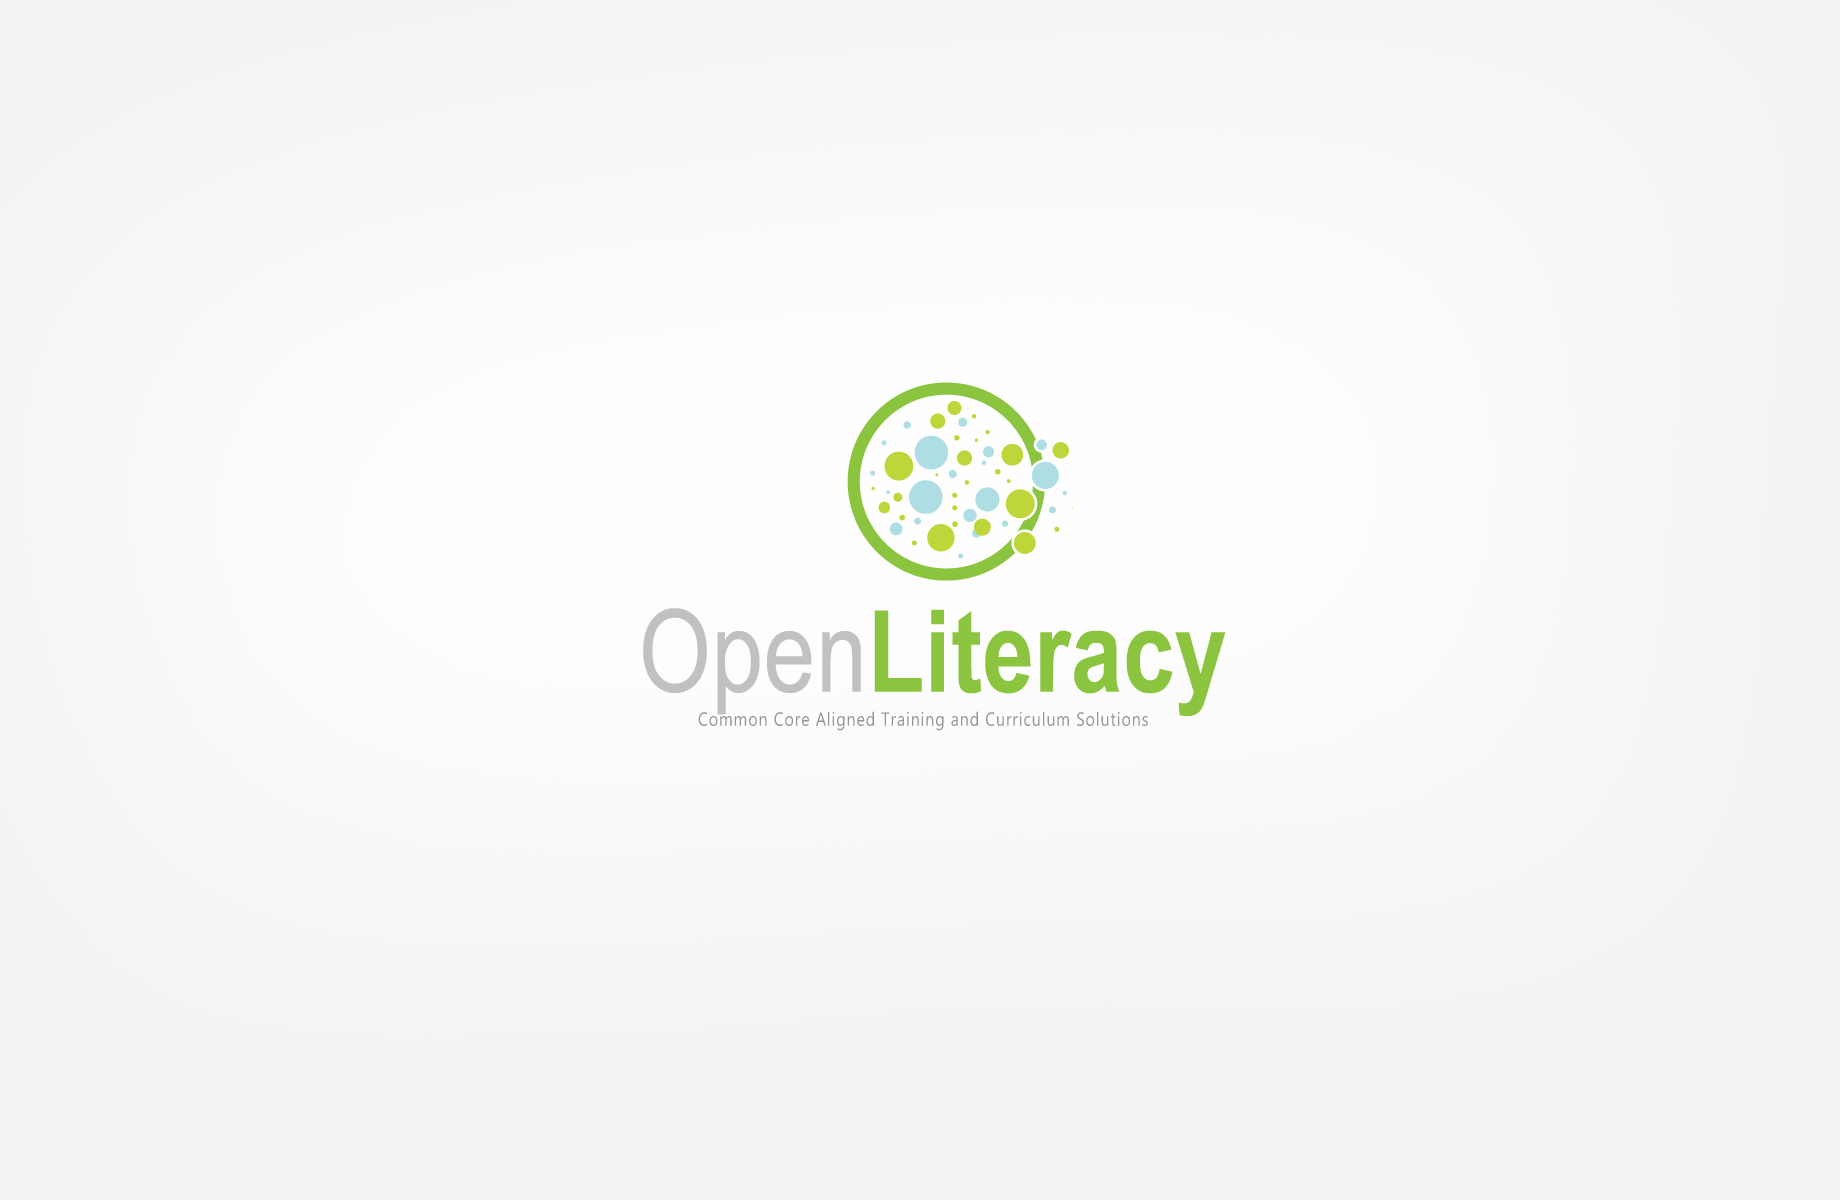 Logo Design by Jan Chua - Entry No. 86 in the Logo Design Contest Inspiring Logo Design for OpenLiteracy.